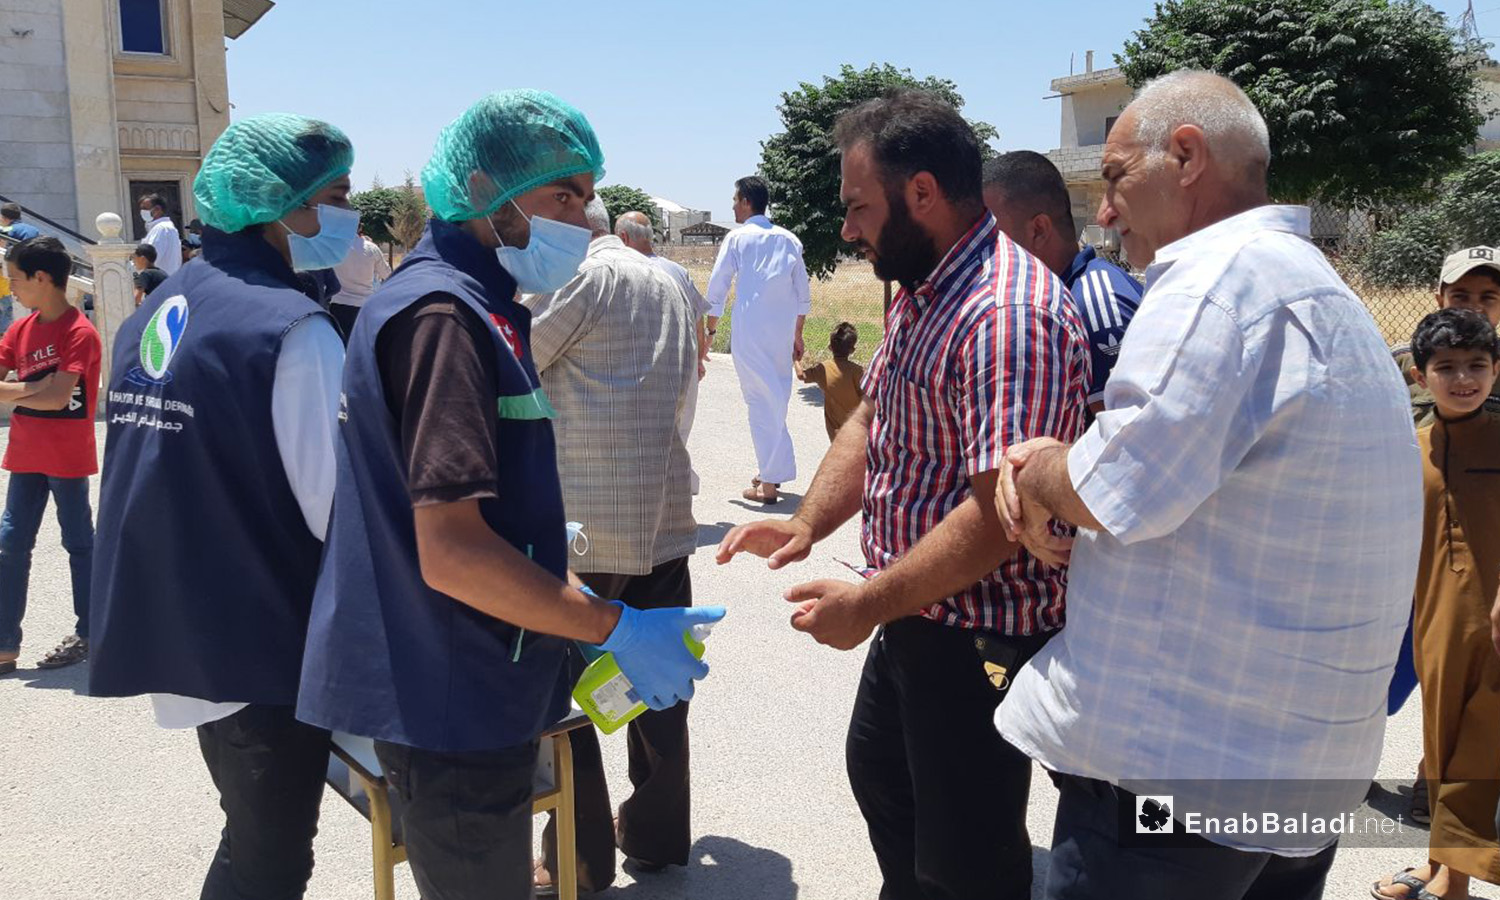 The distribution of sanitizers and disposable medical face masks on the doors of some mosques in northern Idlib countryside as a preventive measure against a further spread of the novel coronavirus (COVID-19) pandemic – 07 July 2020 (Enab Baladi / Iyad Abdel Jawad)